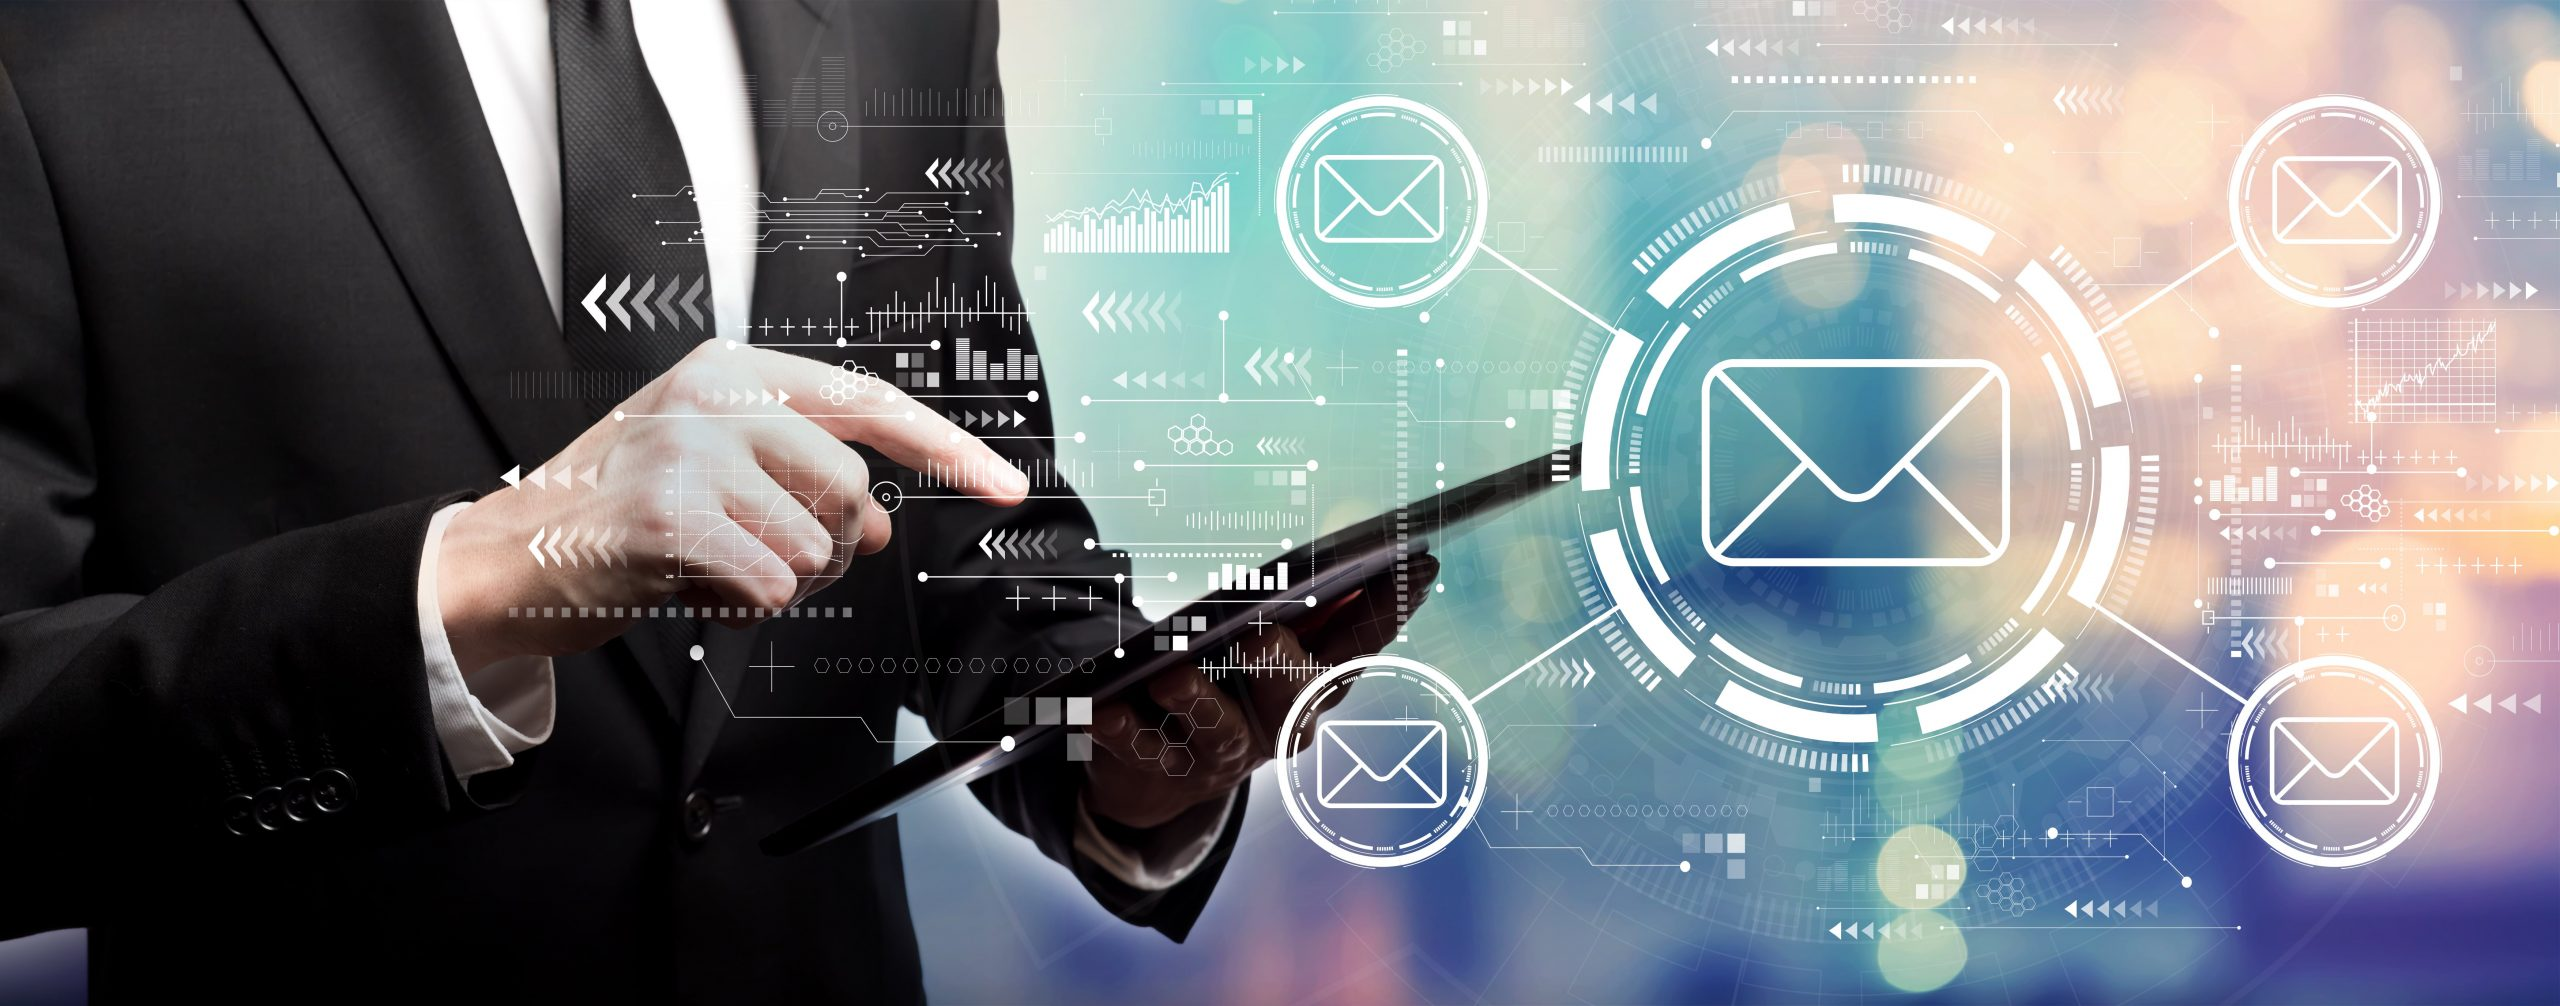 Email Marketing: All You Need to Know About Interactive Email and Email Automation